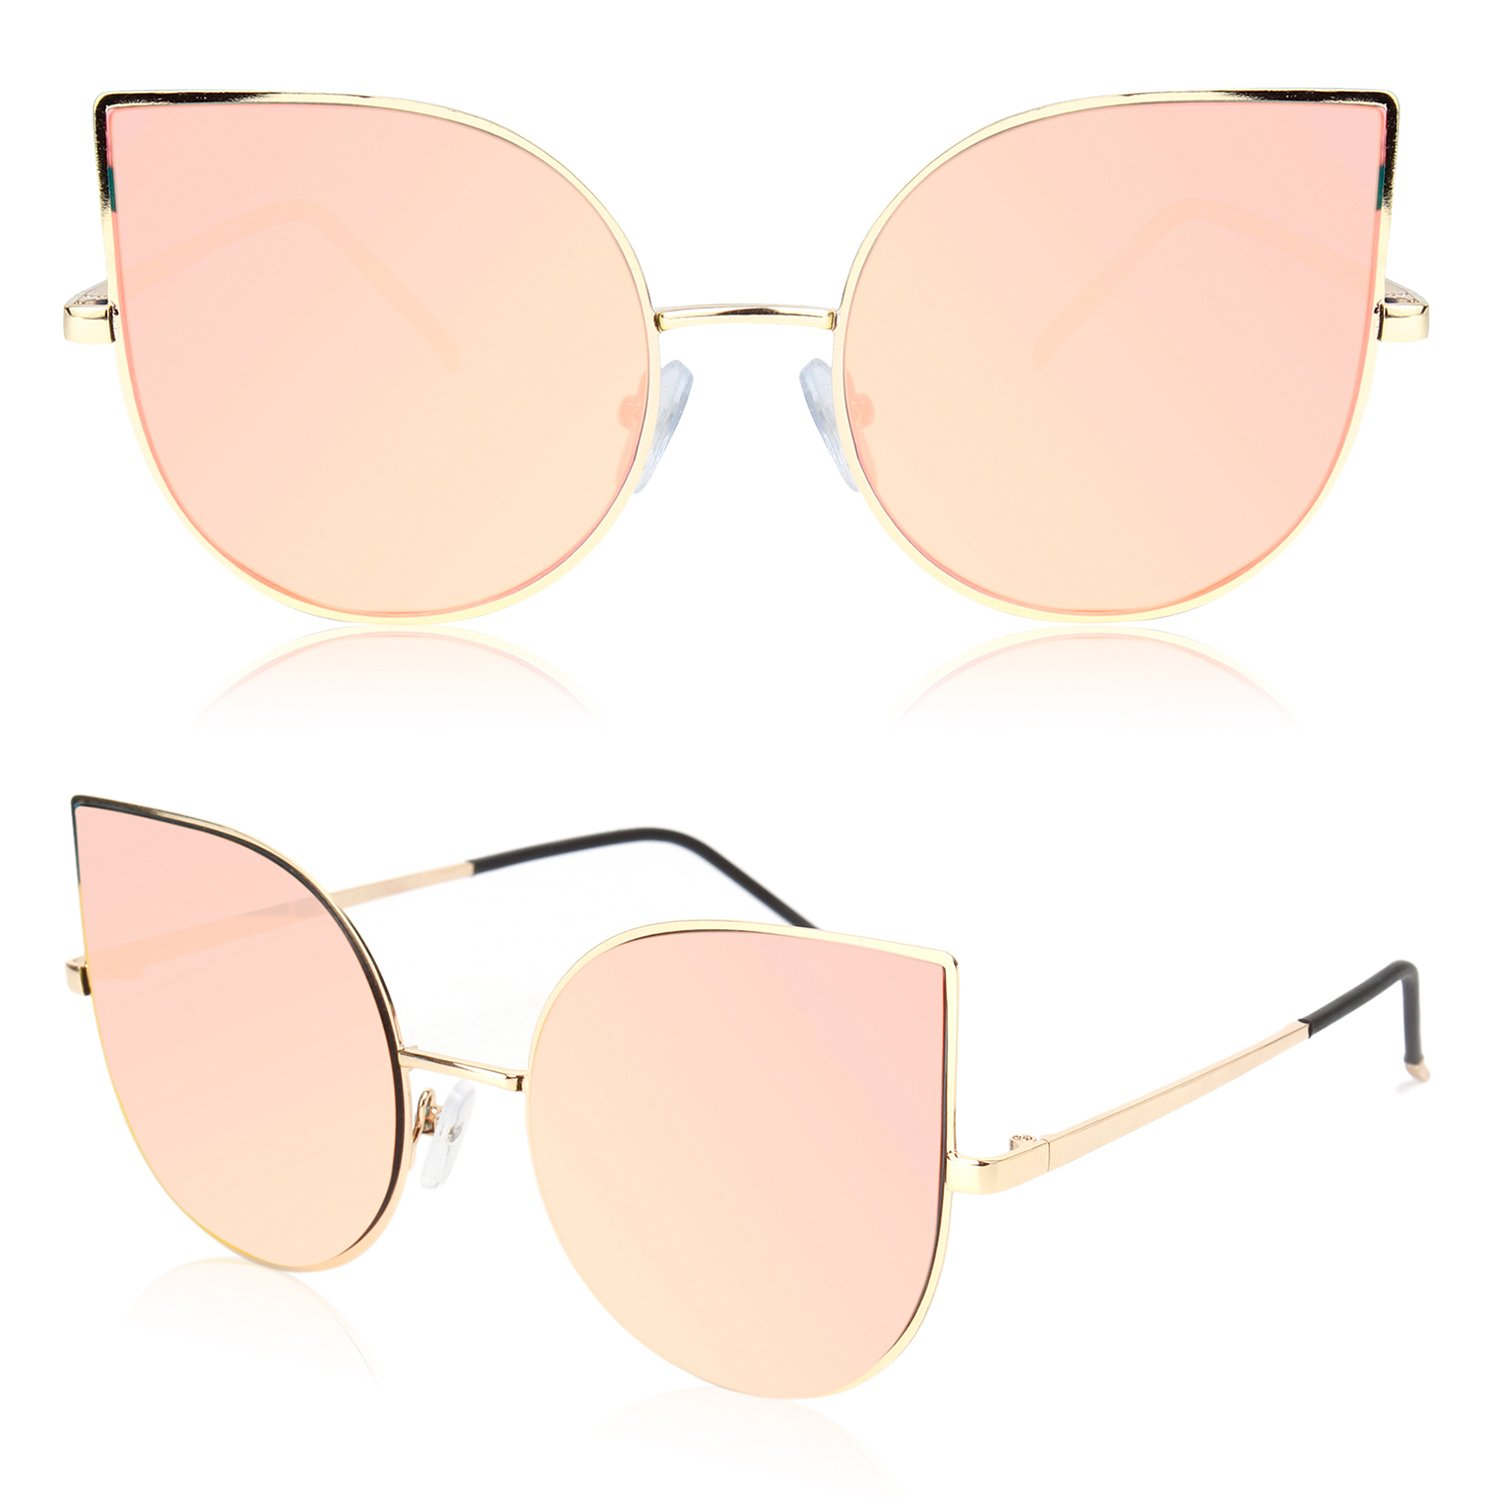 a5d5724dc7c SOJOS Cat Eye Mirrored Flat Lenses Ultra Thin Light Metal Frame Women  Sunglasses SJ1022 with Gold Frame Pink Mirrored Lens